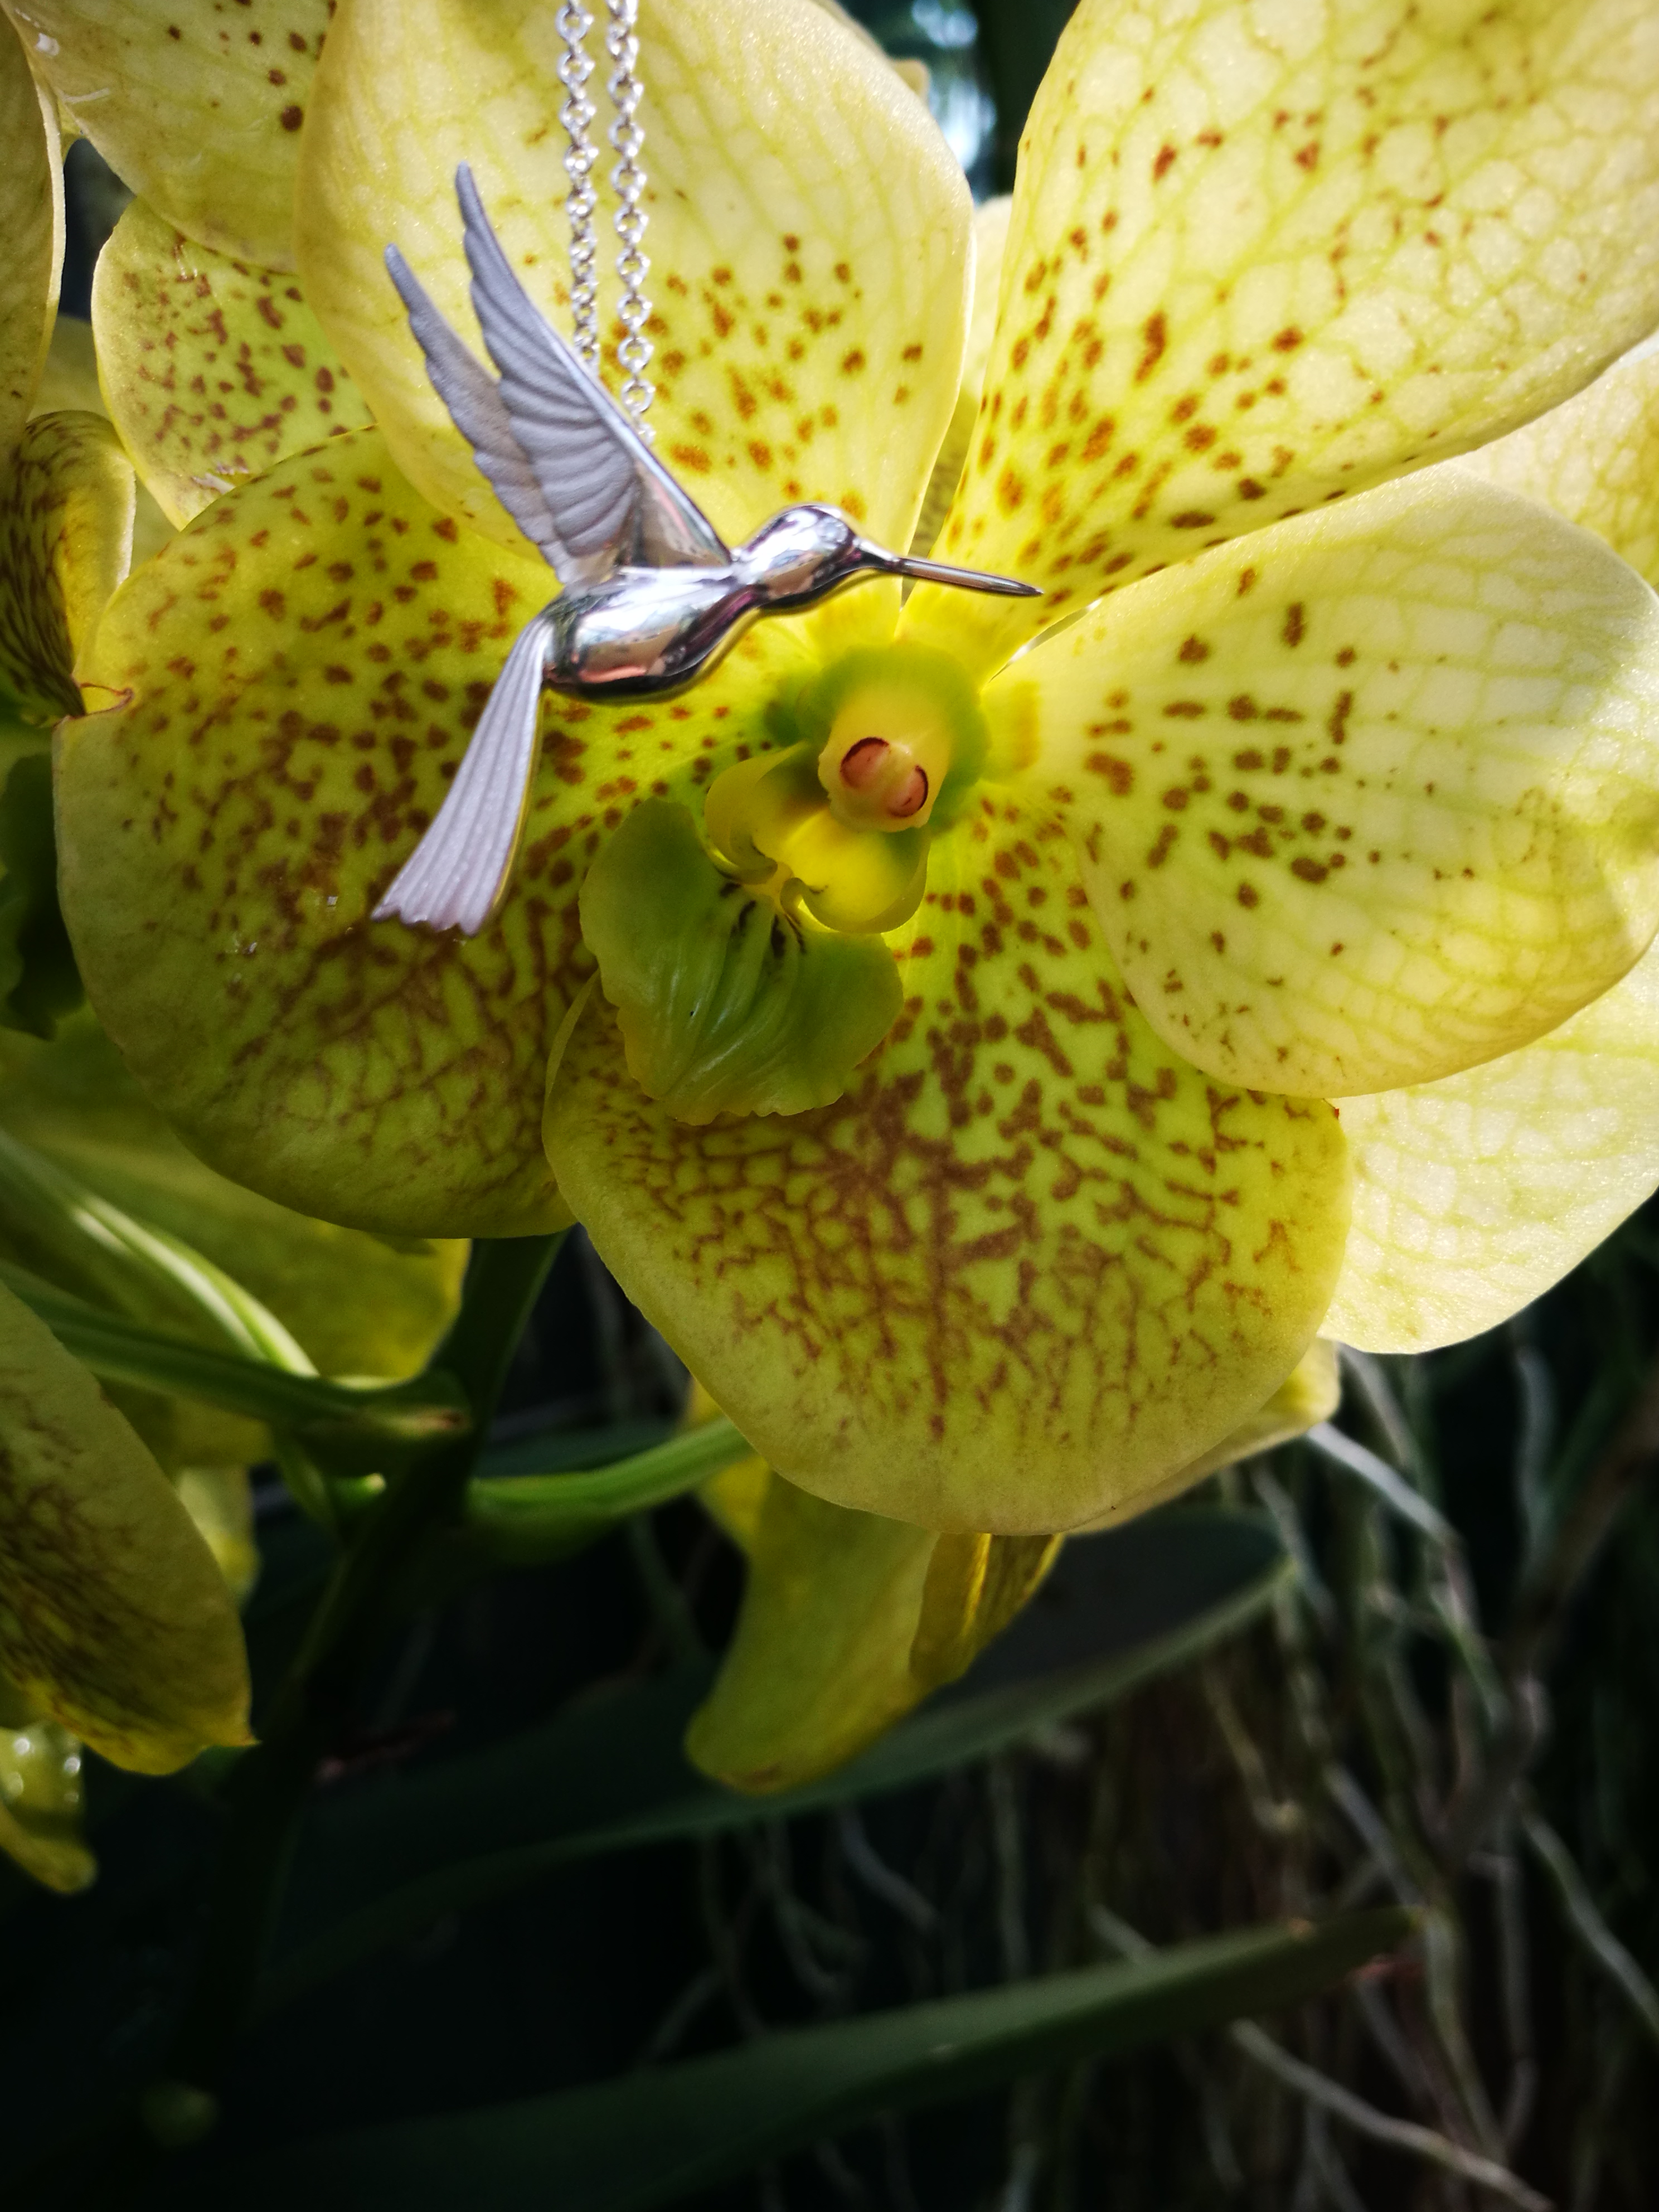 Green orchid with silver hummingbird pendant in foreground.